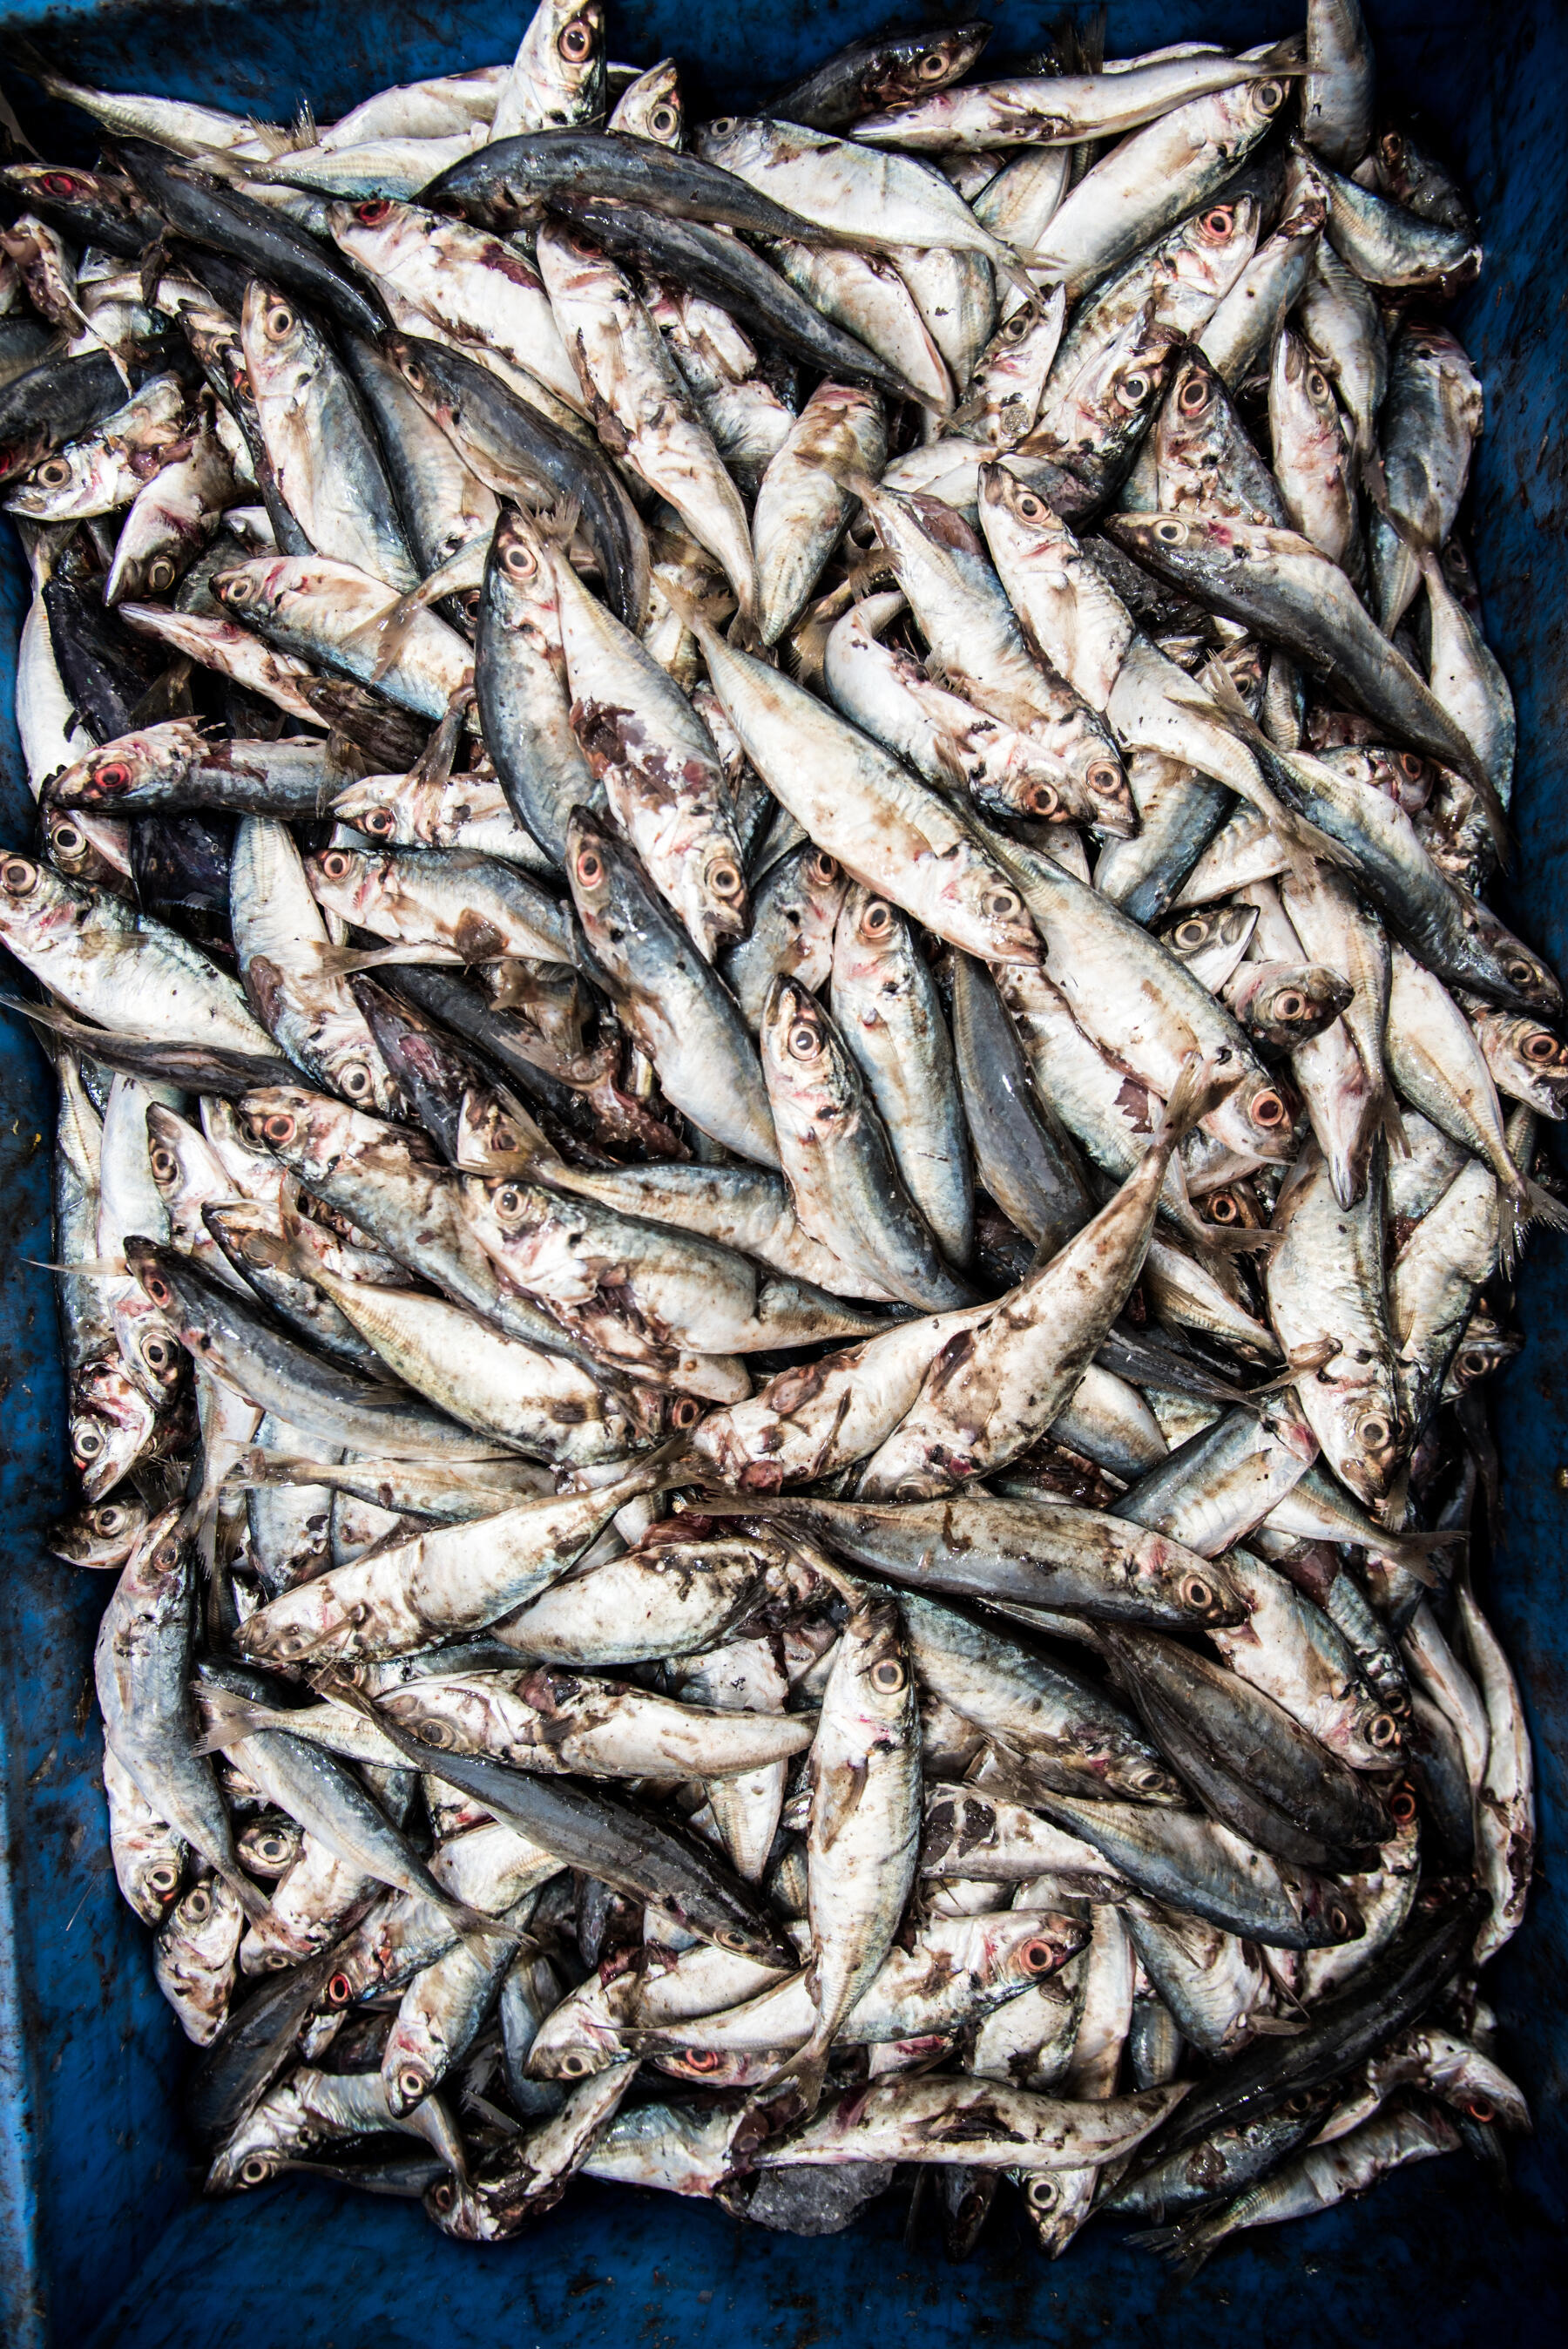 Products labelled as sustainable in European supermarkets have been linked to destructive fishing practices.